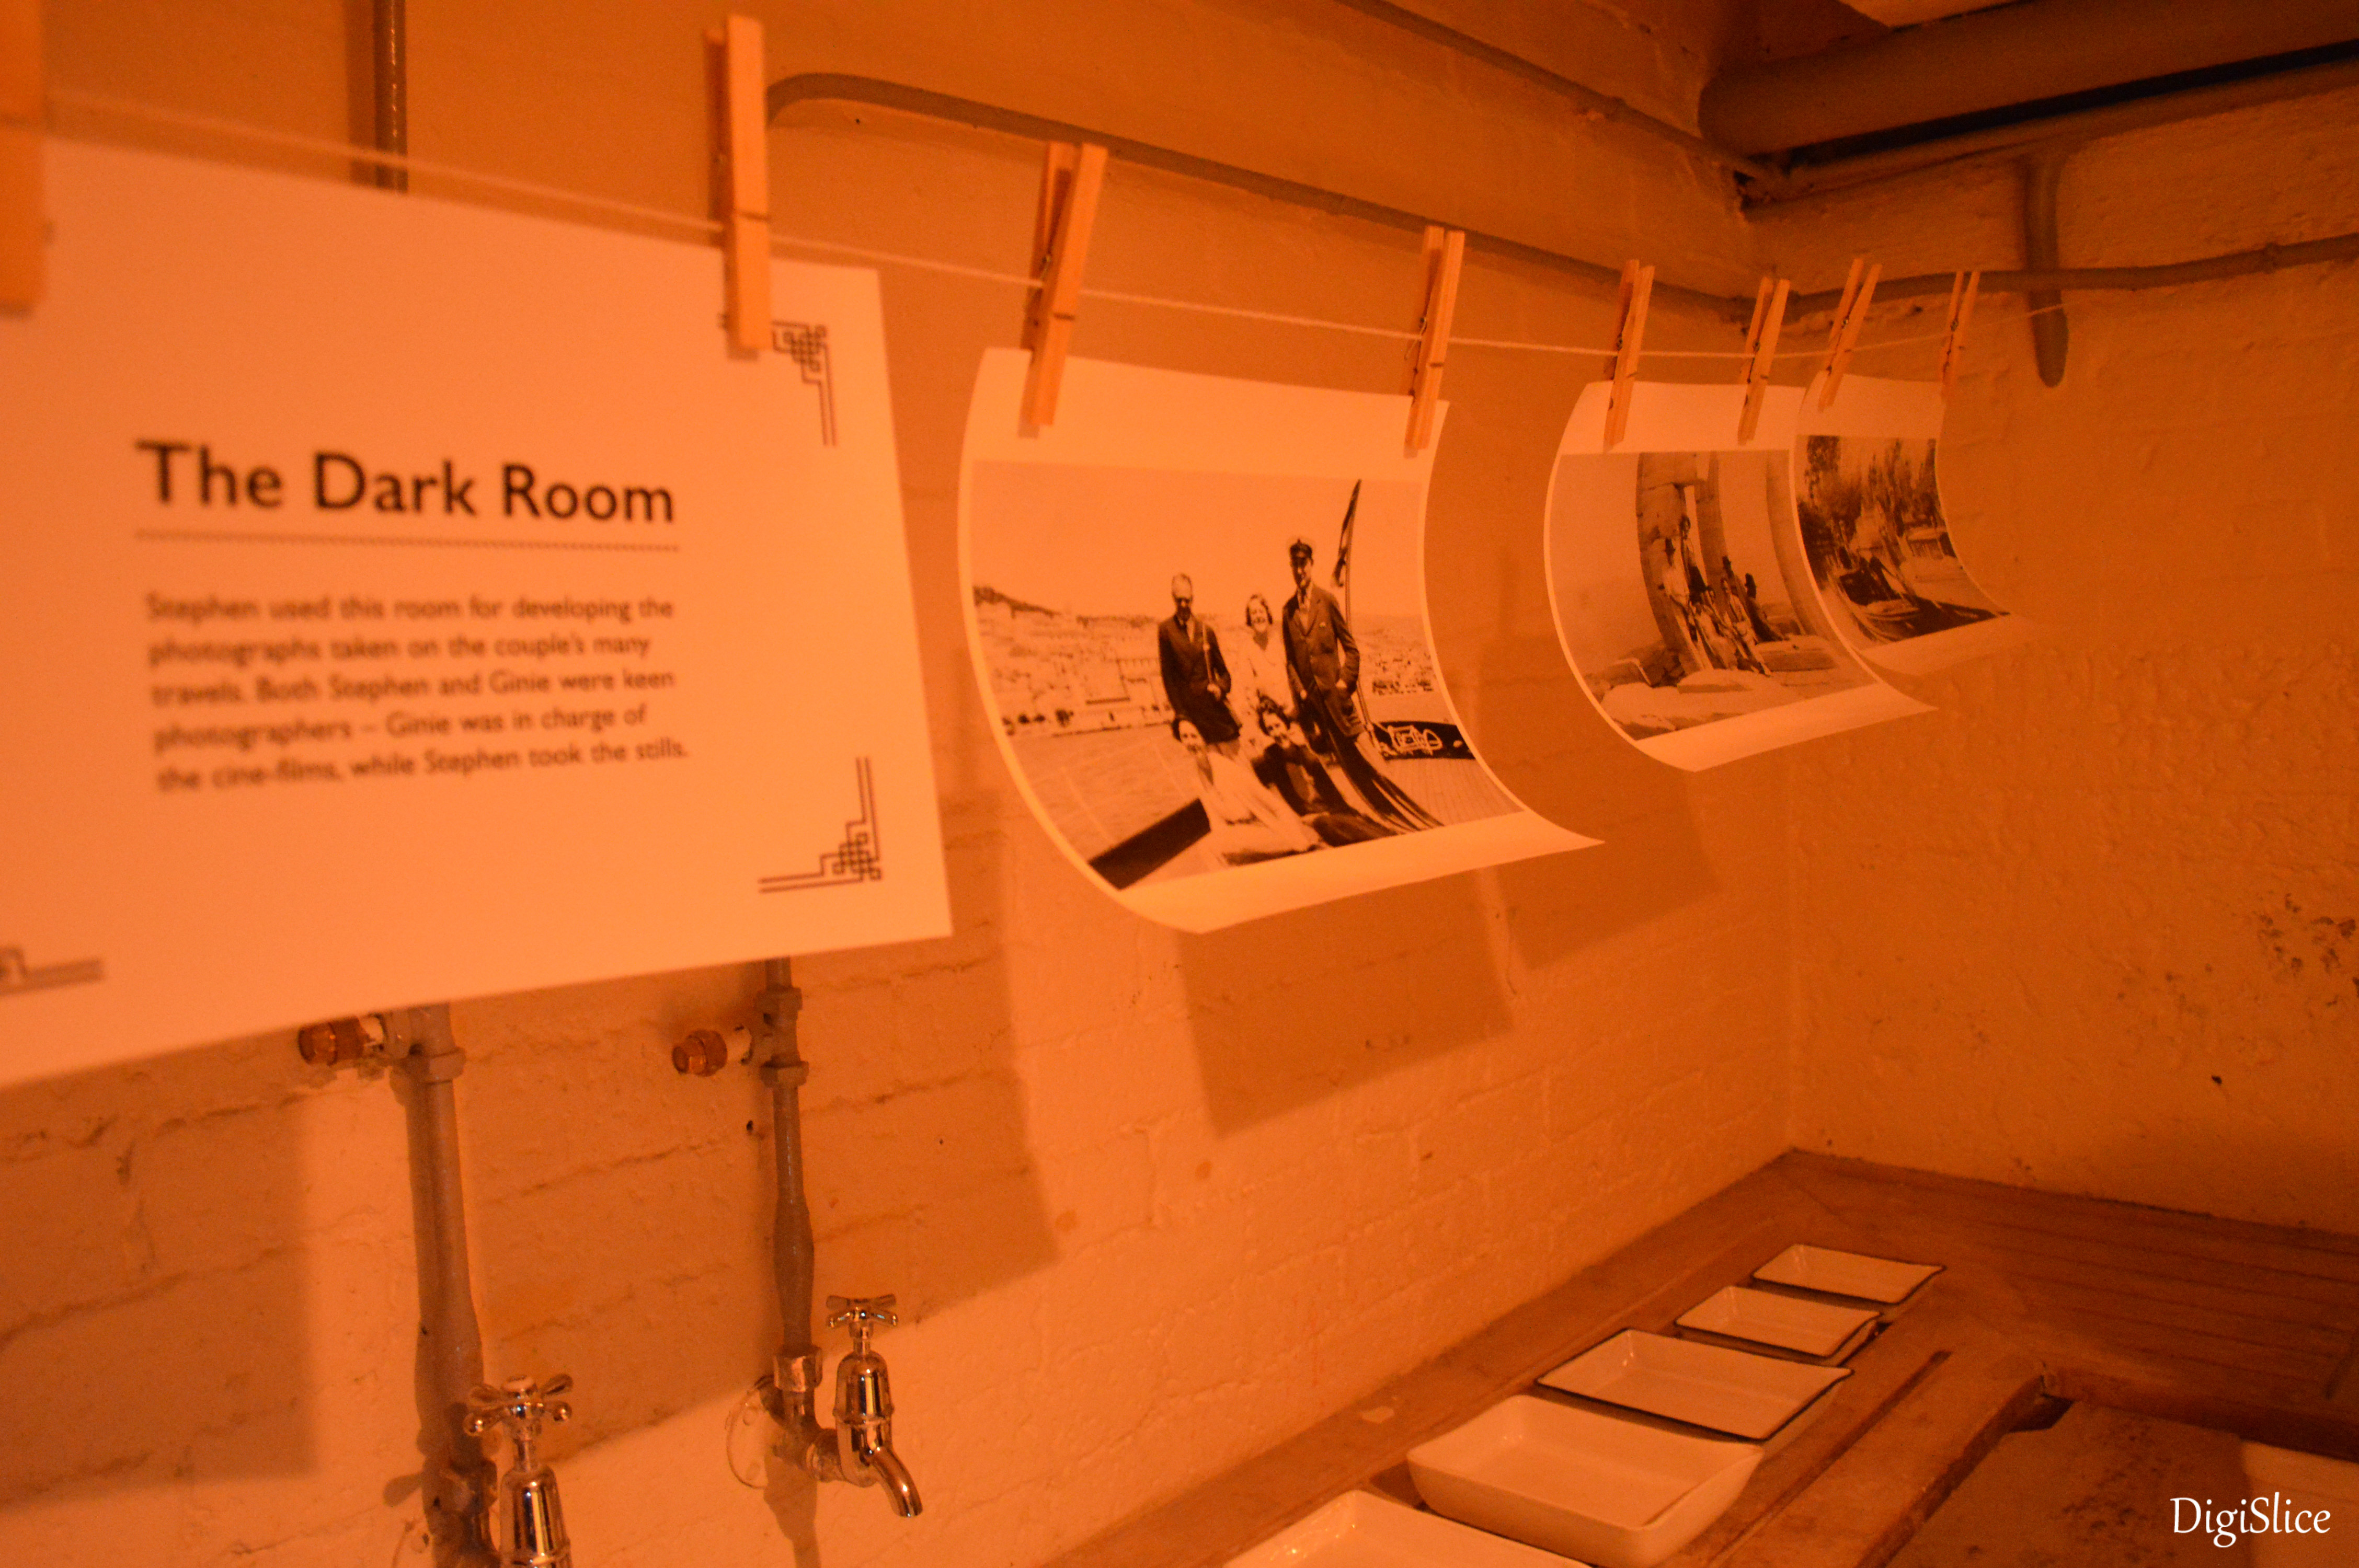 The dark room, Eltham Room